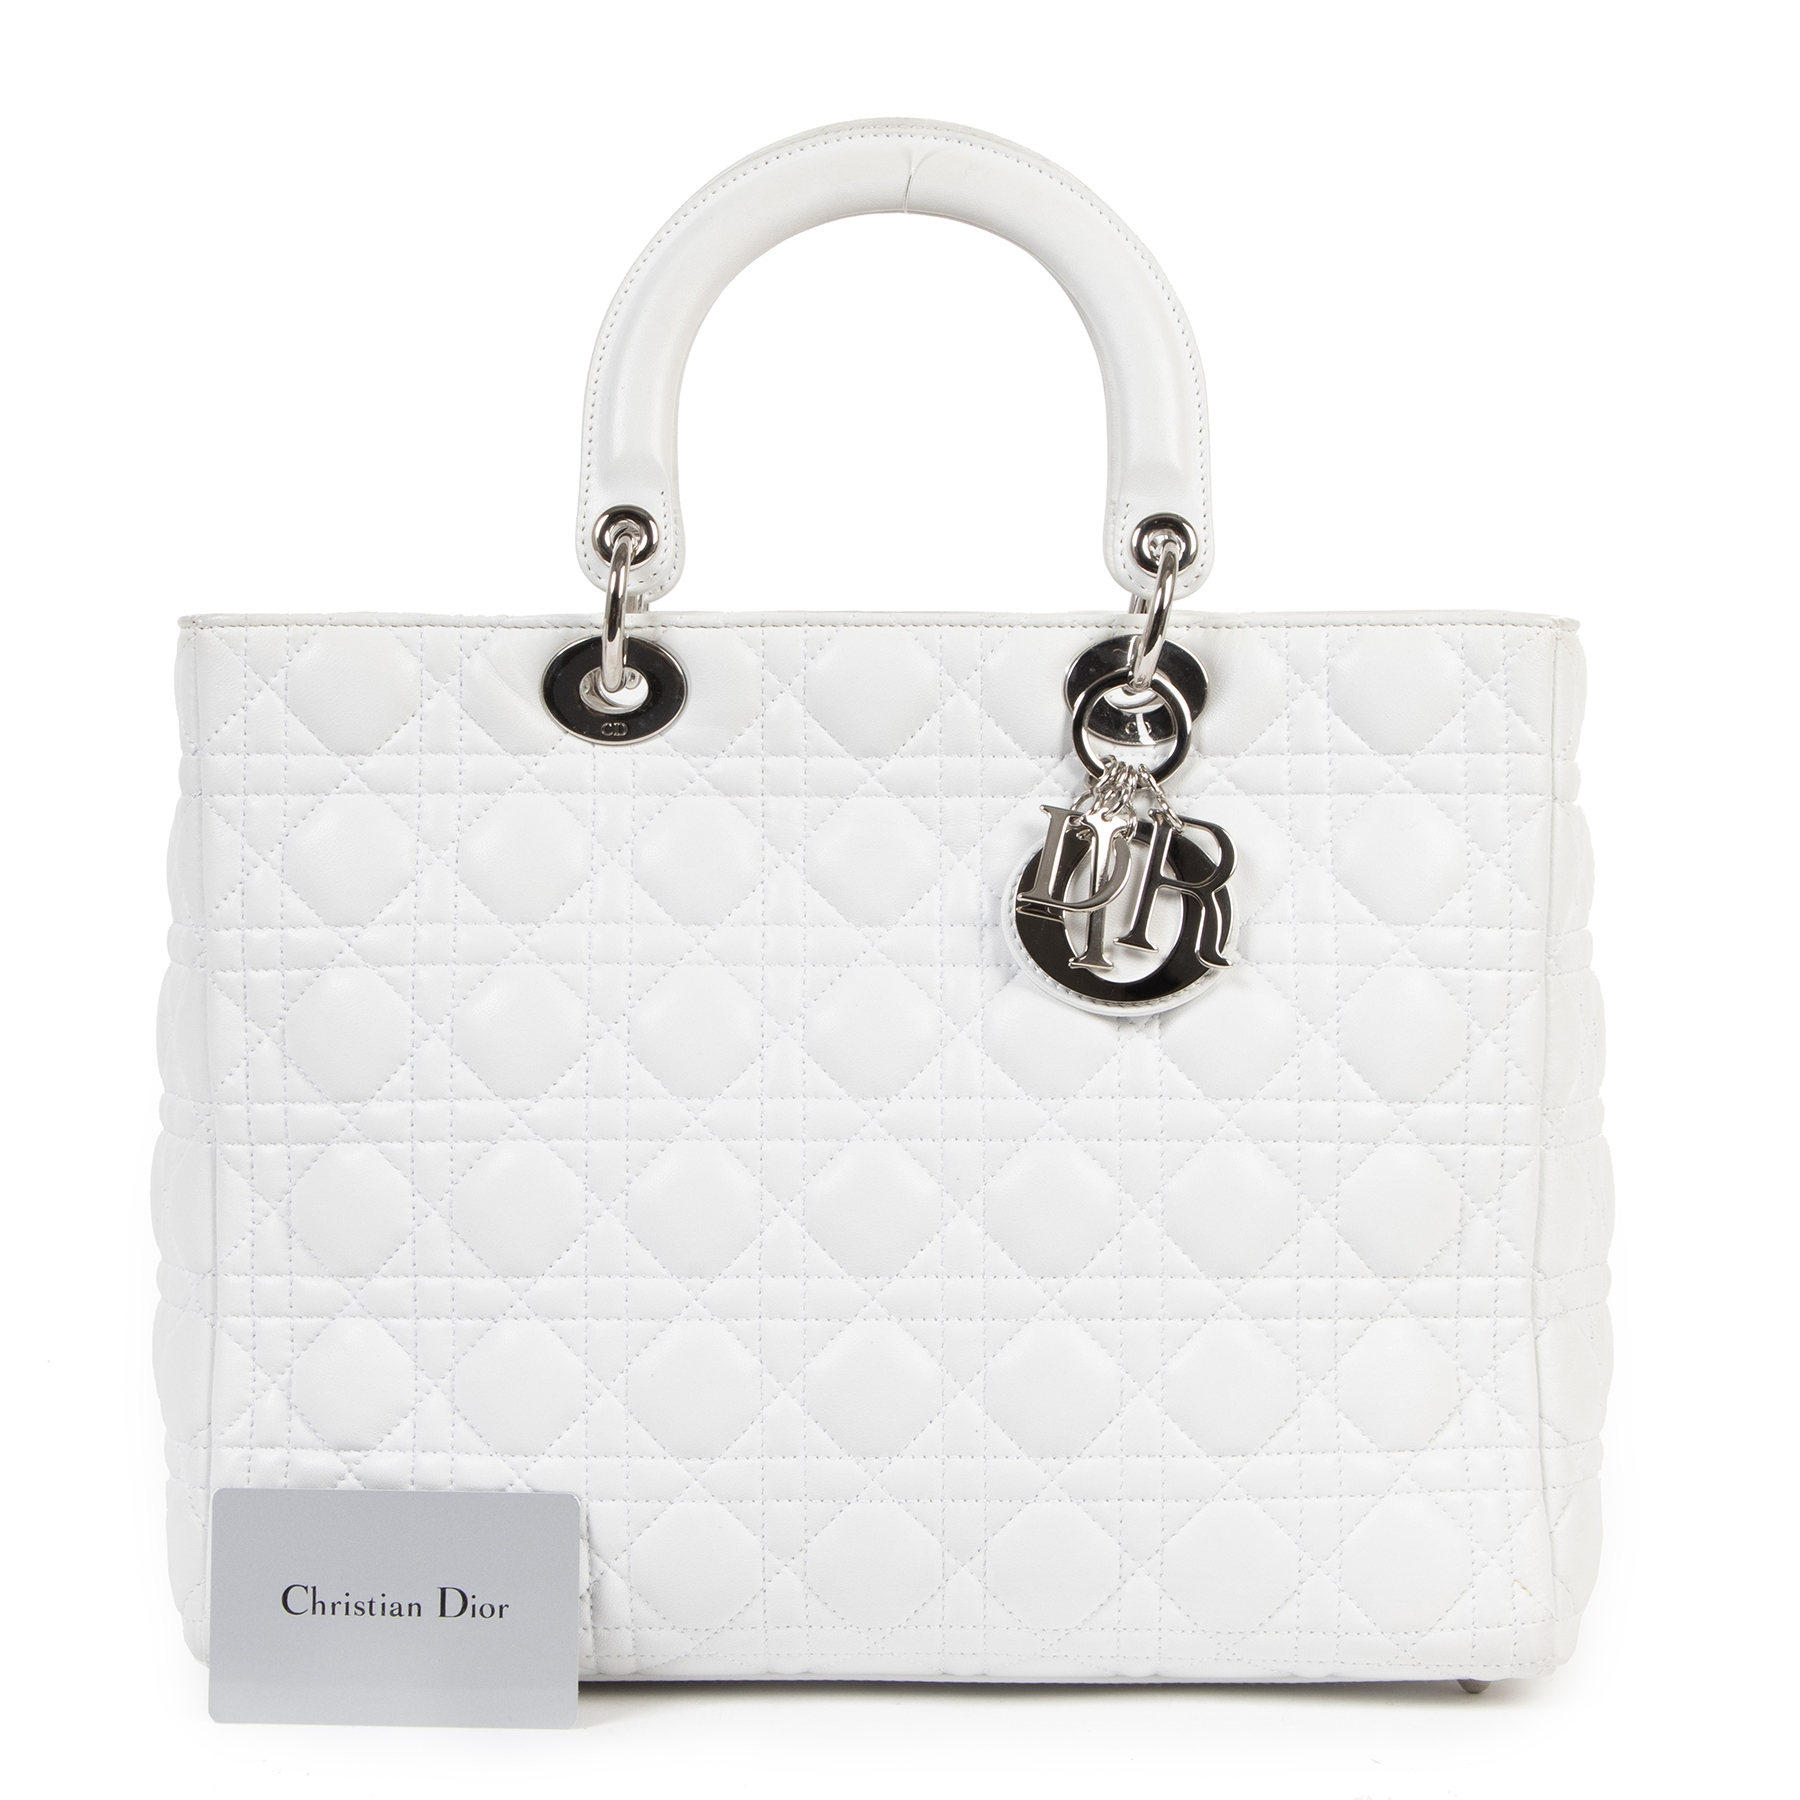 Dior Lady Dior White Large Top Handle